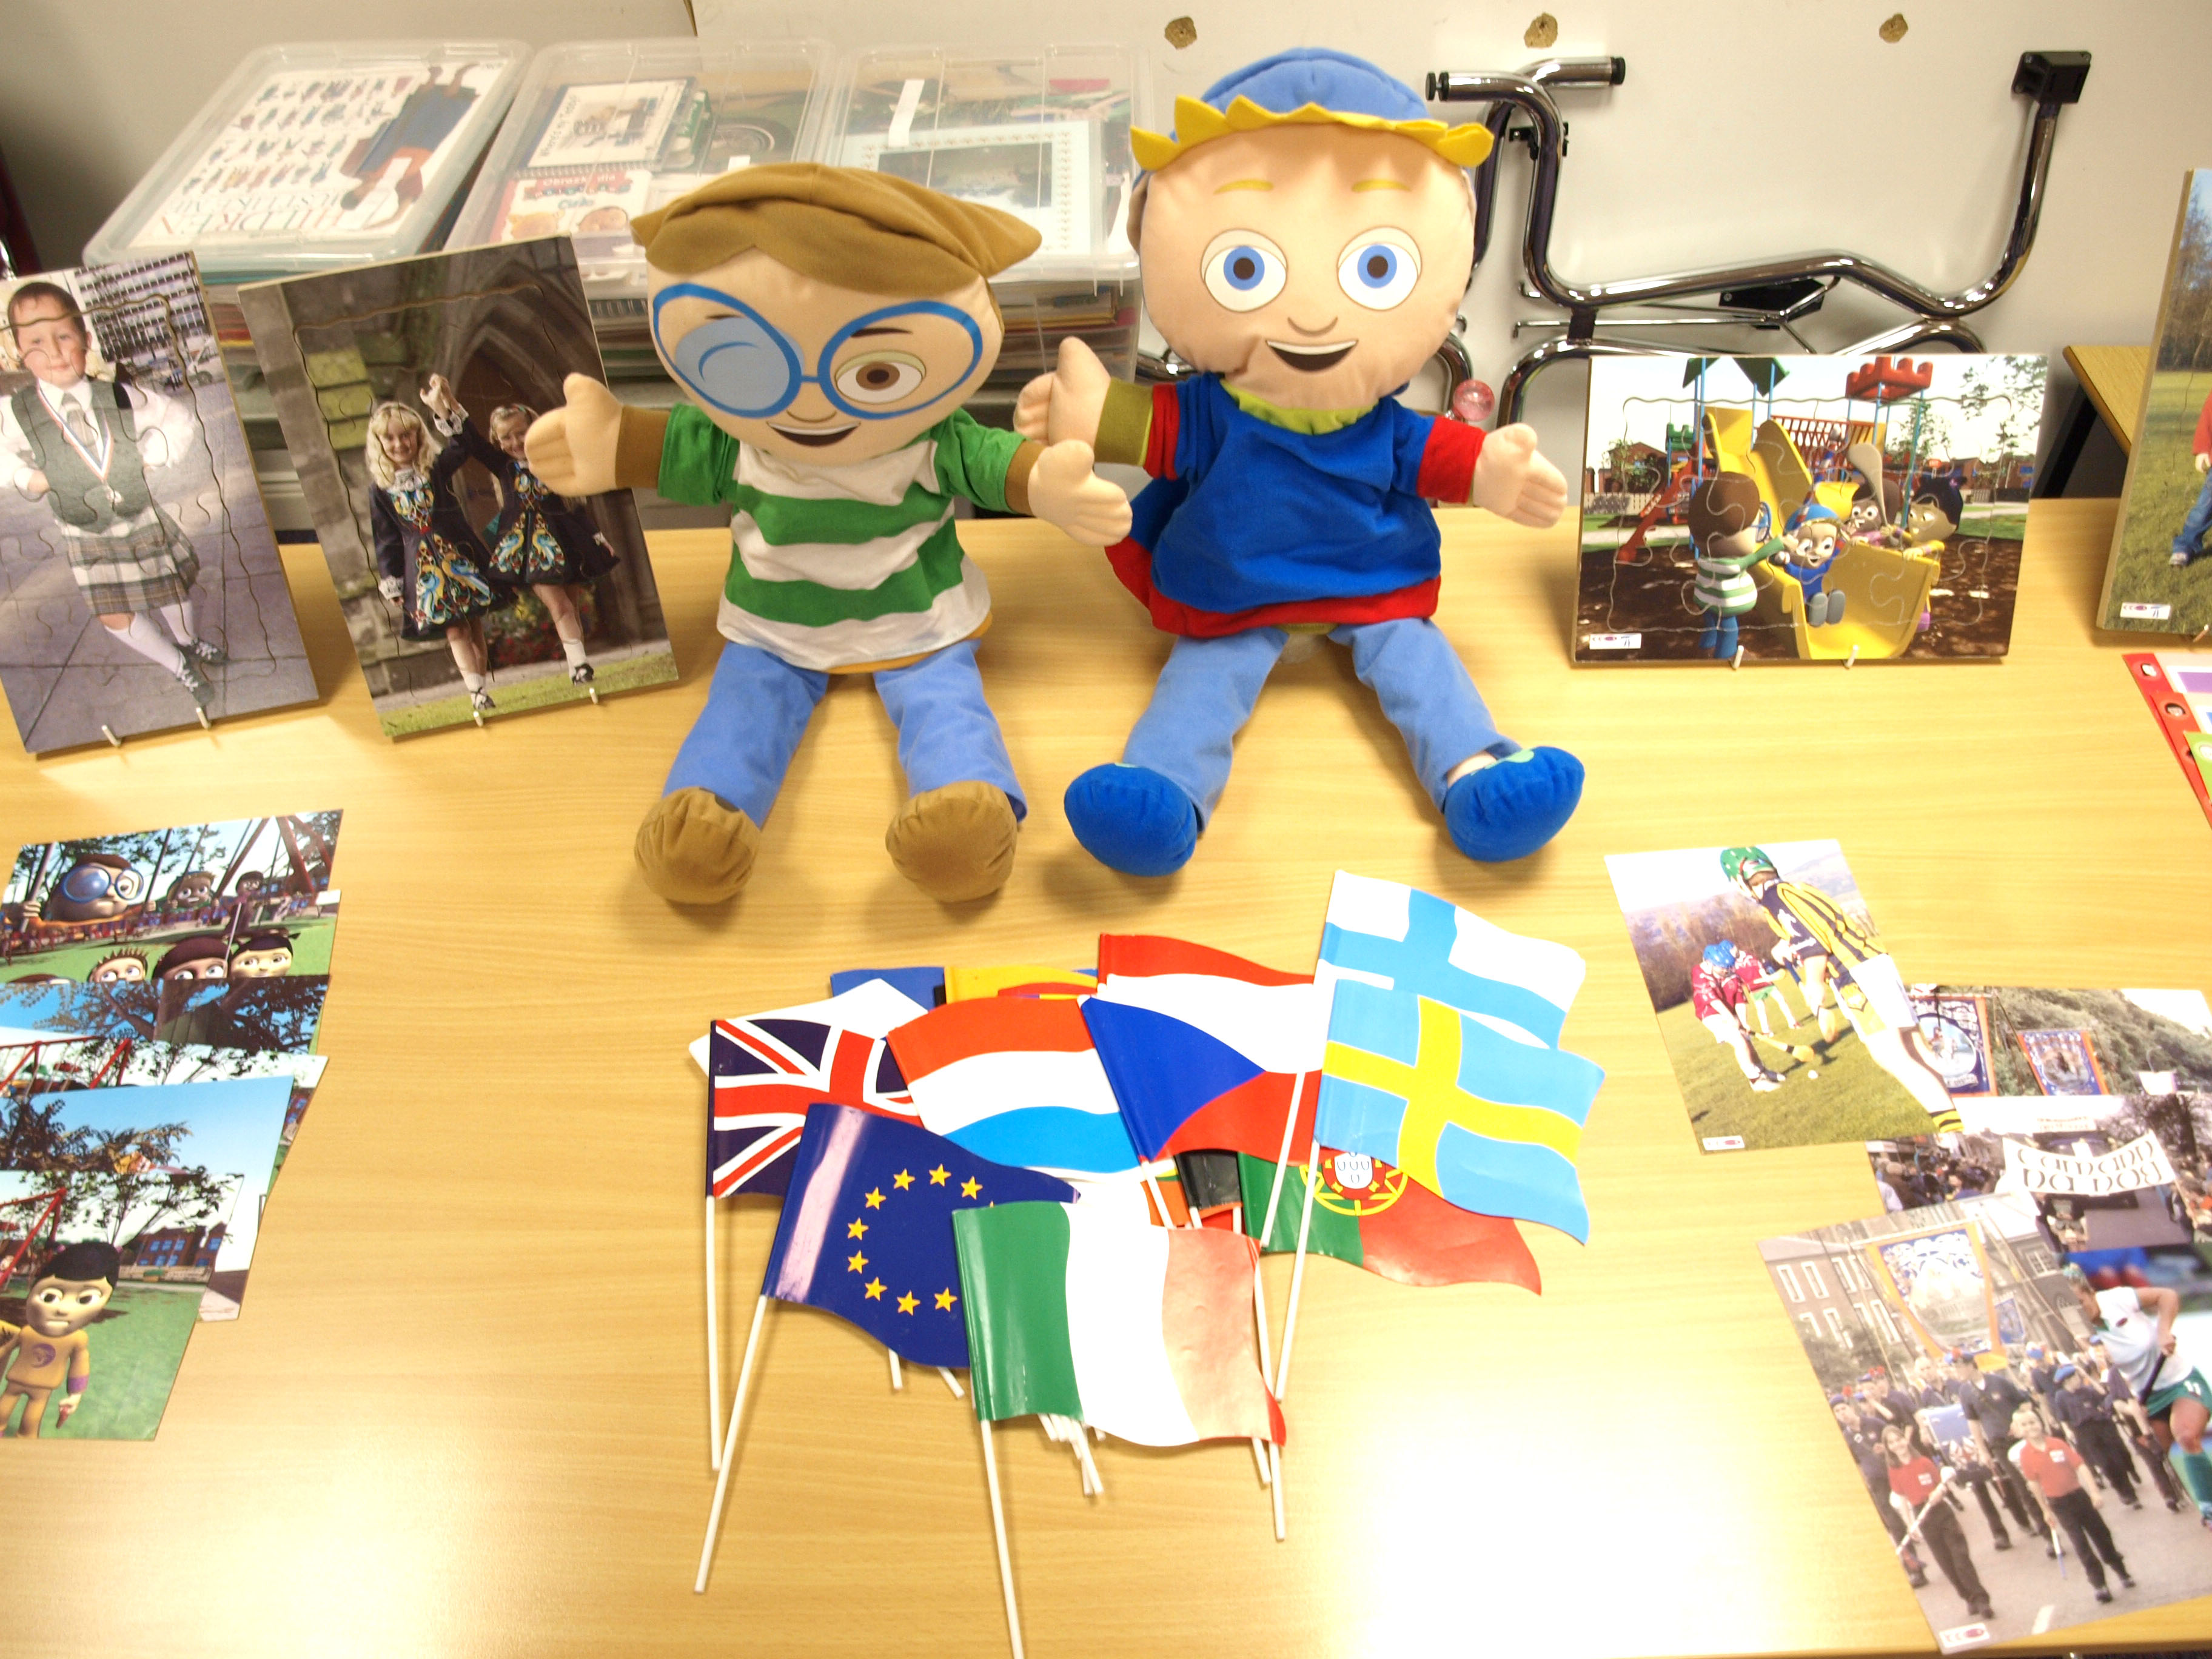 Two happy puppets sit upon on a desk with photographs - The Media Initiative for Children (N. Ireland).